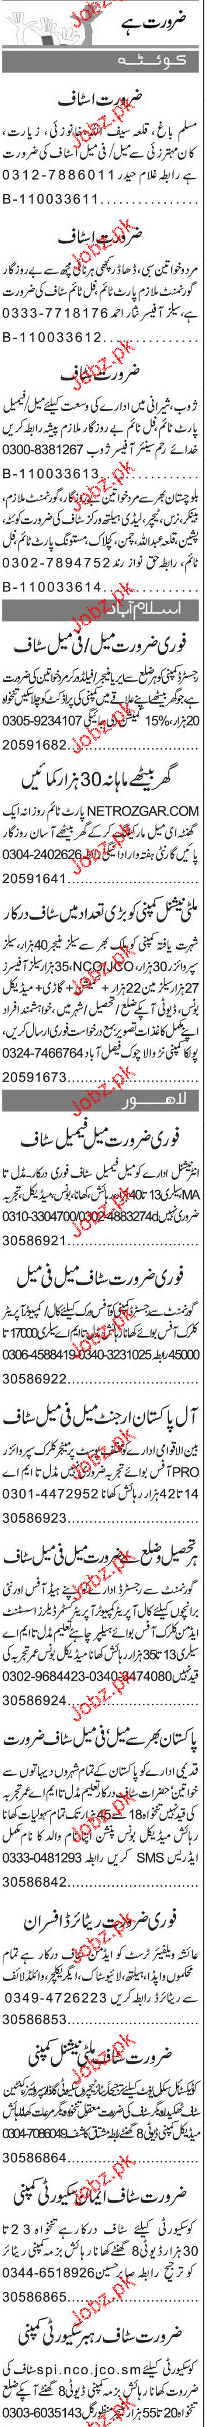 Sales Officers, Area Managers, Data Entry Operators Wanted